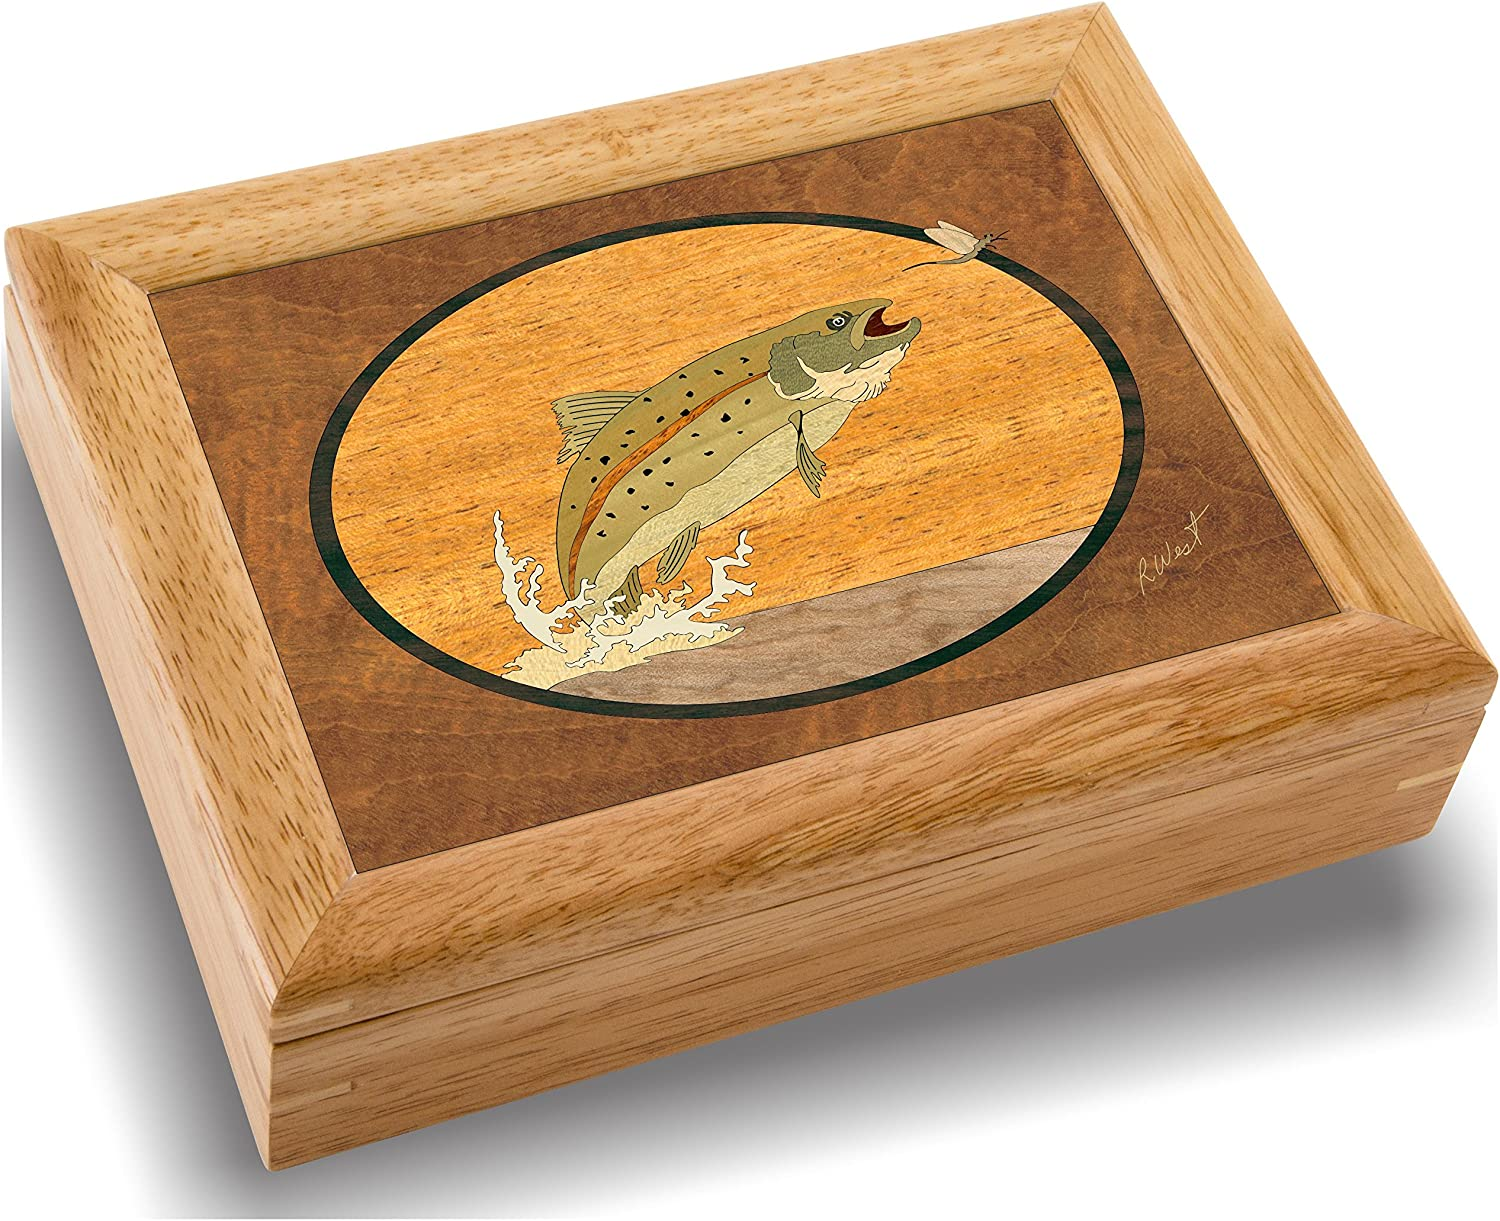 Wood Art Popular product Fish Sale item Box - Handmade Unmatched Quality in USA Unique